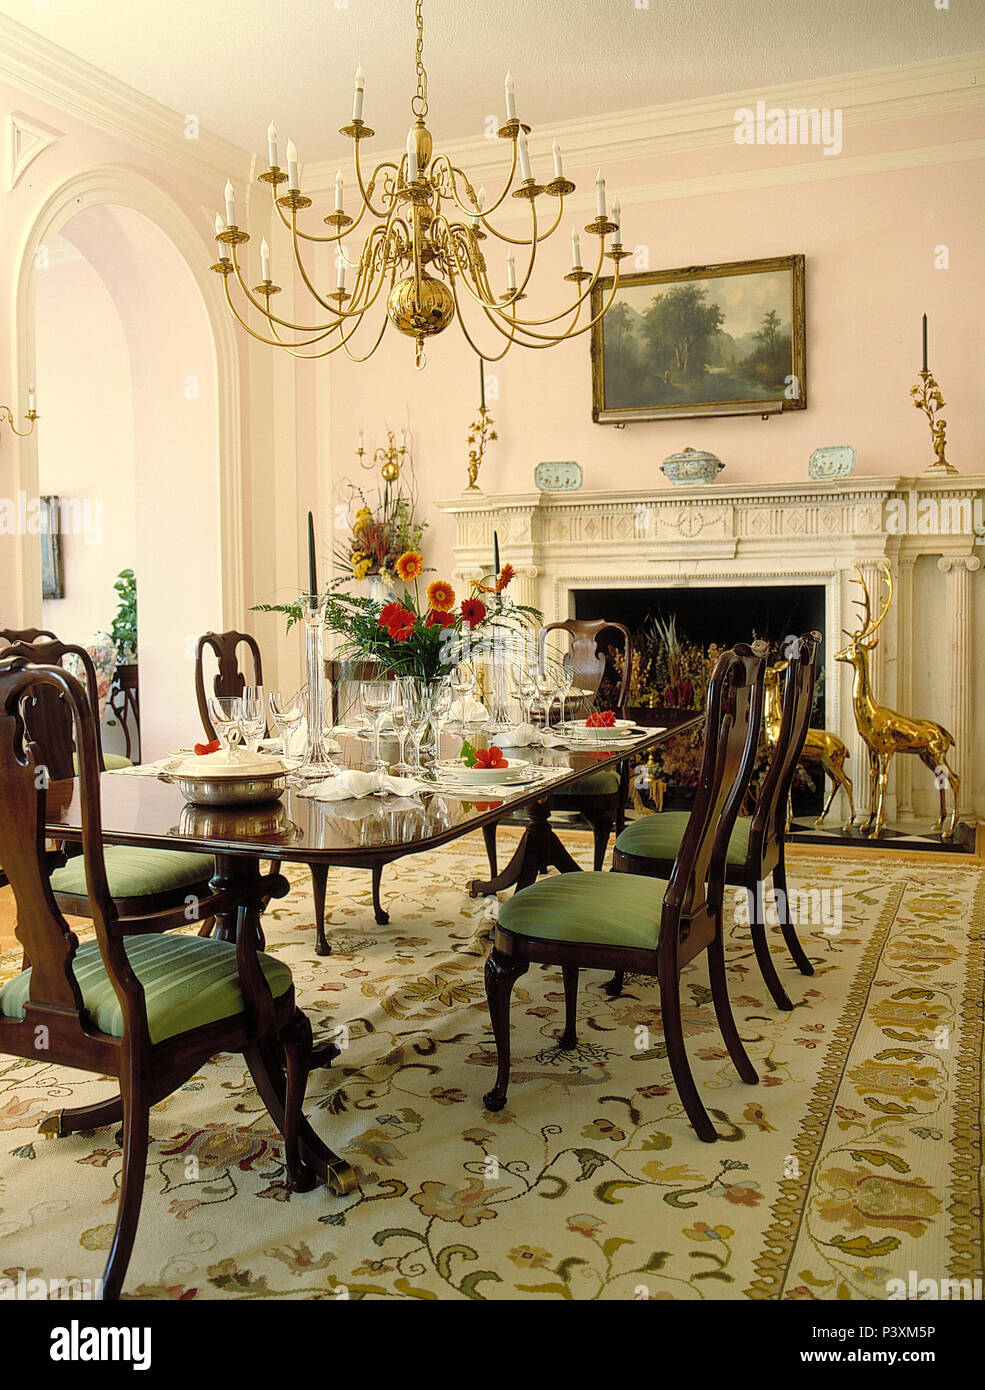 Chandelier over antique mahogany dining table and chairs in grand dining  room with pale patterned rug - Chandelier Over Antique Mahogany Dining Table And Chairs In Grand